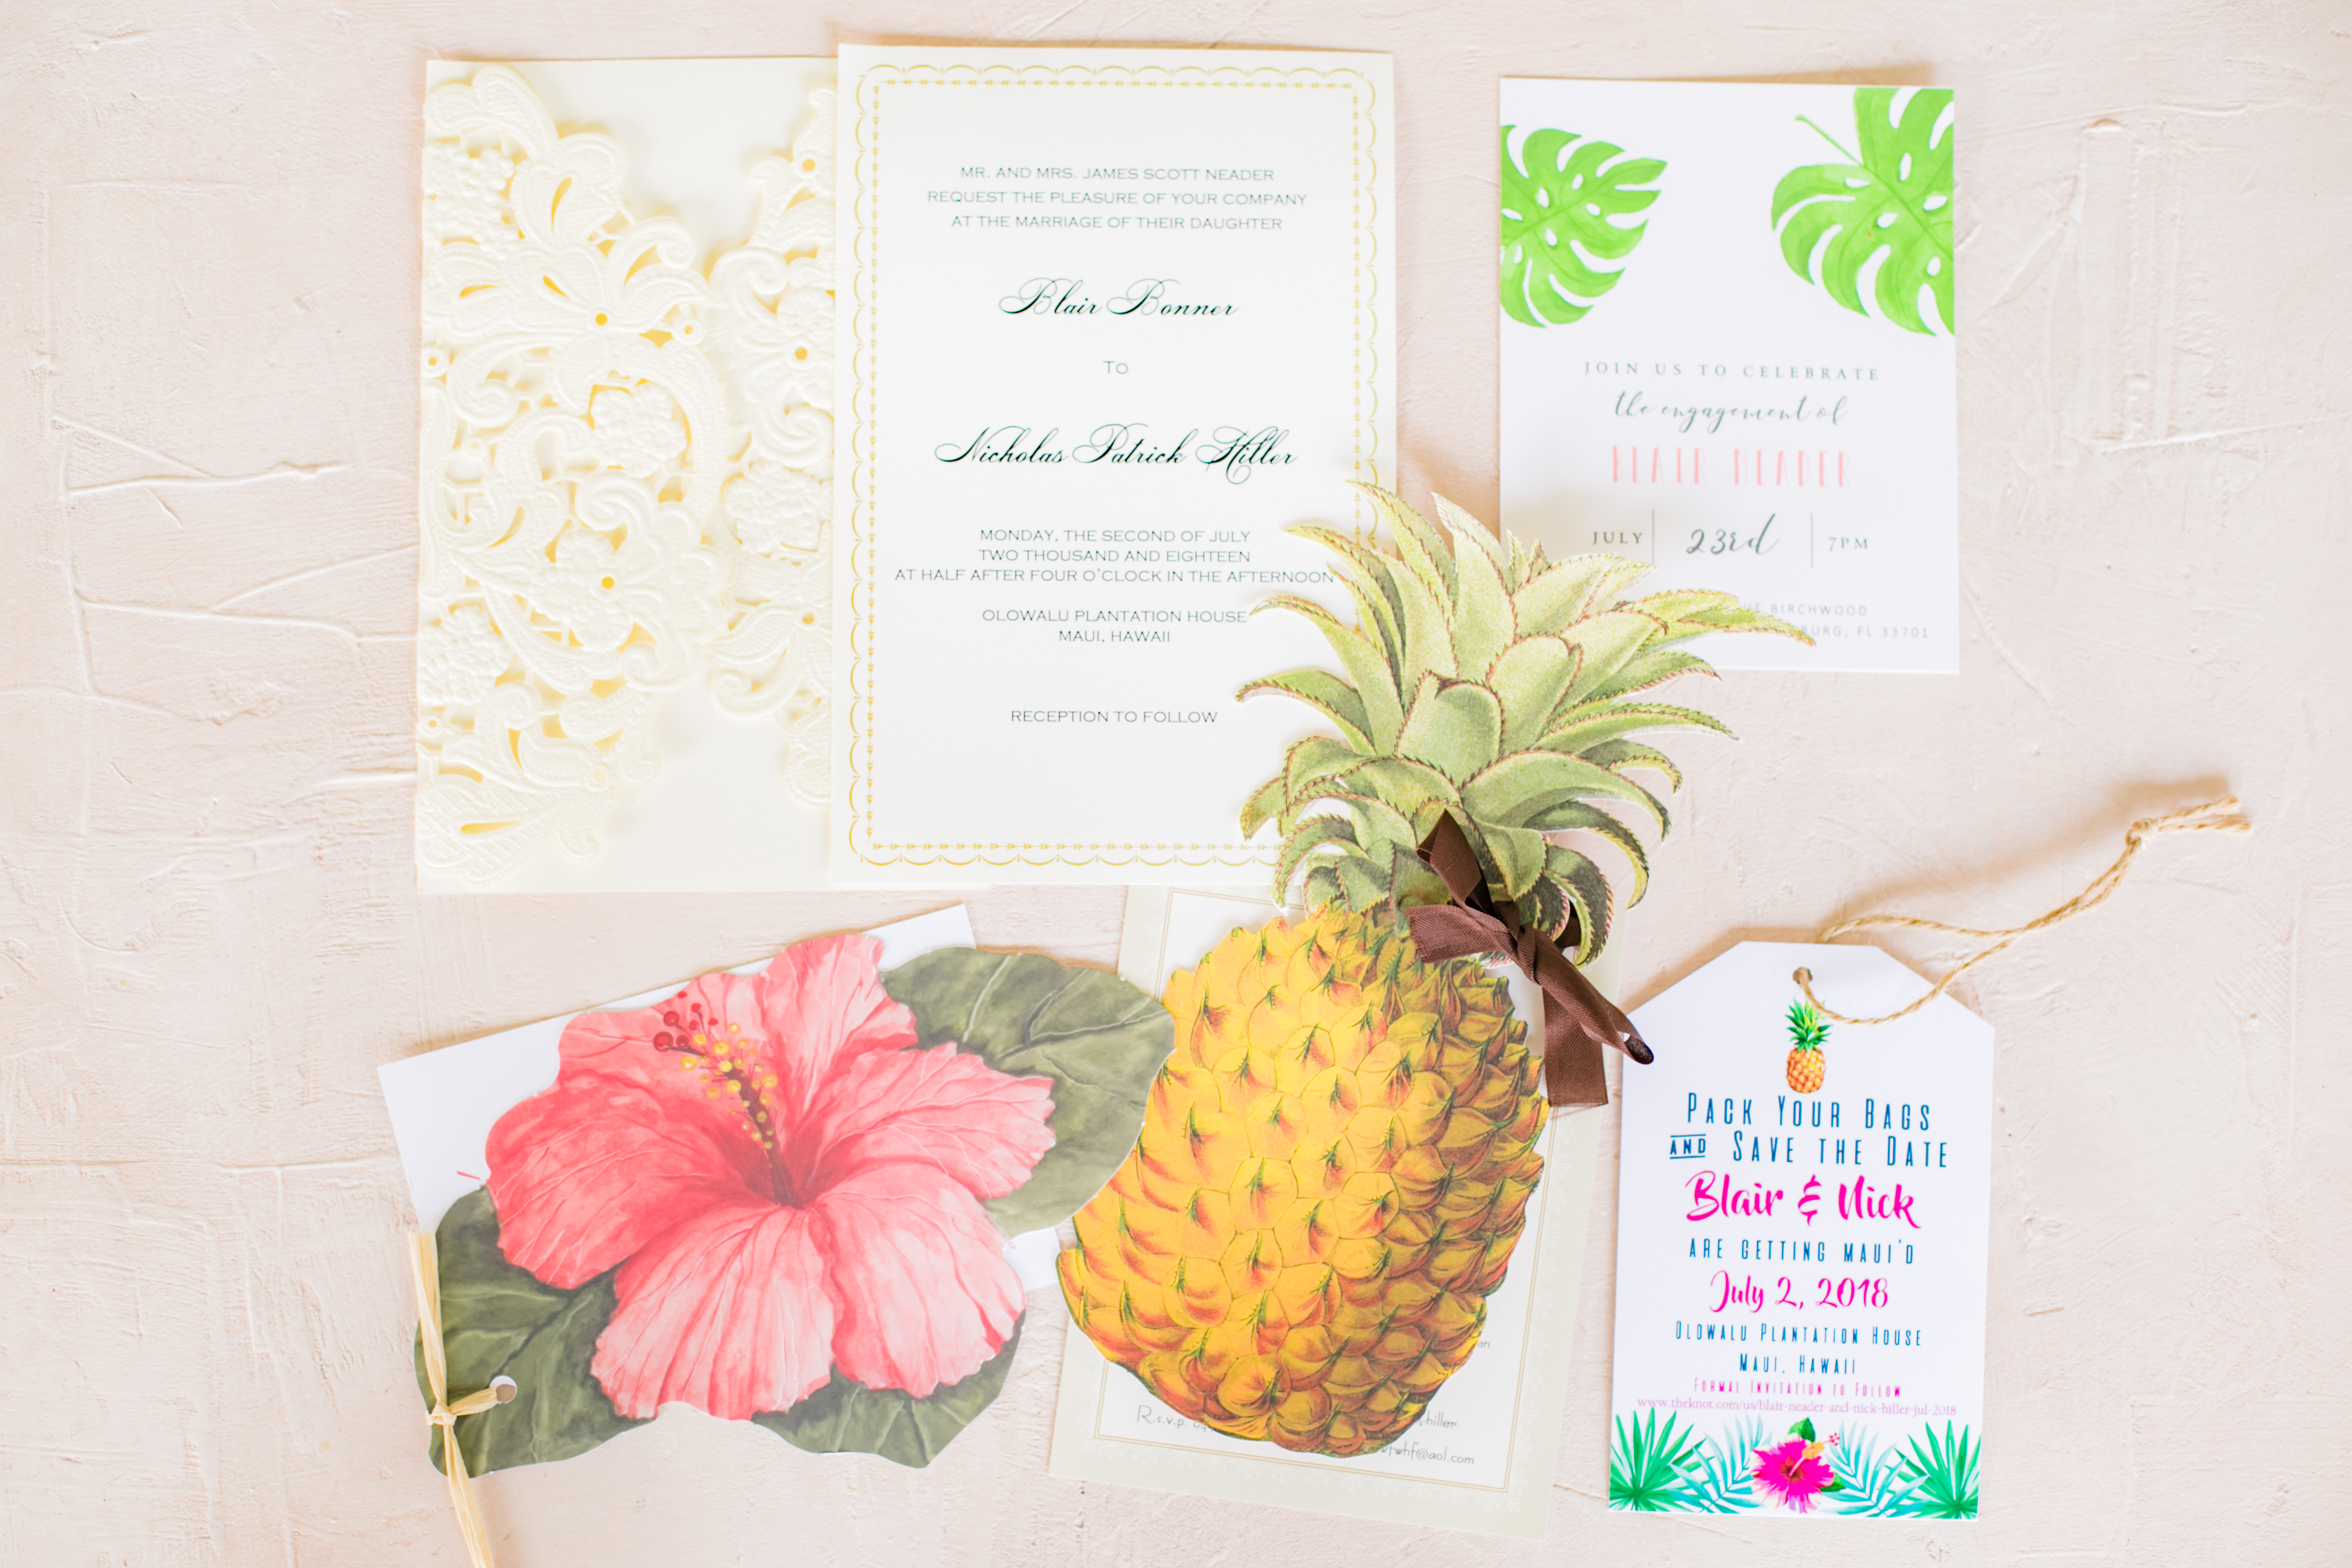 Custom Wedding Invites | Destination Wedding in Maui | Maui Wedding Planner | Maui's Angels blog